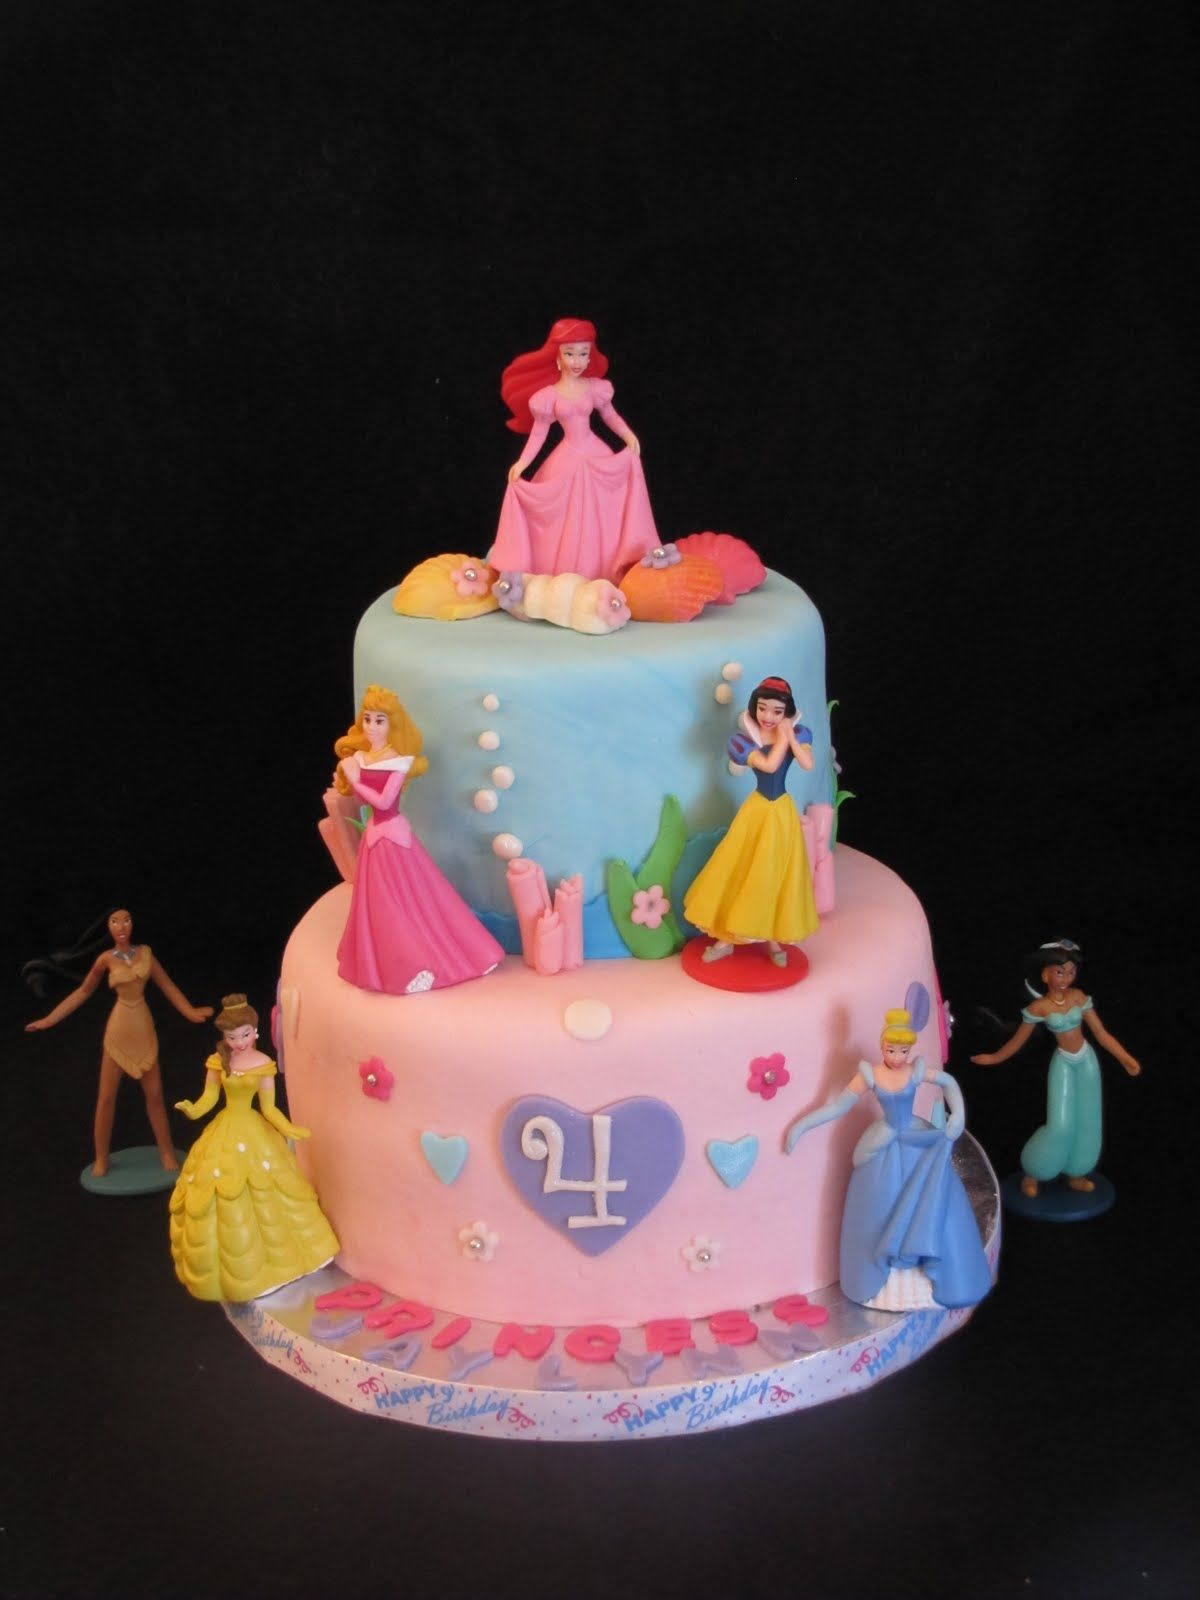 Disney princess cakecan we do this Ashley Phipps I can learn